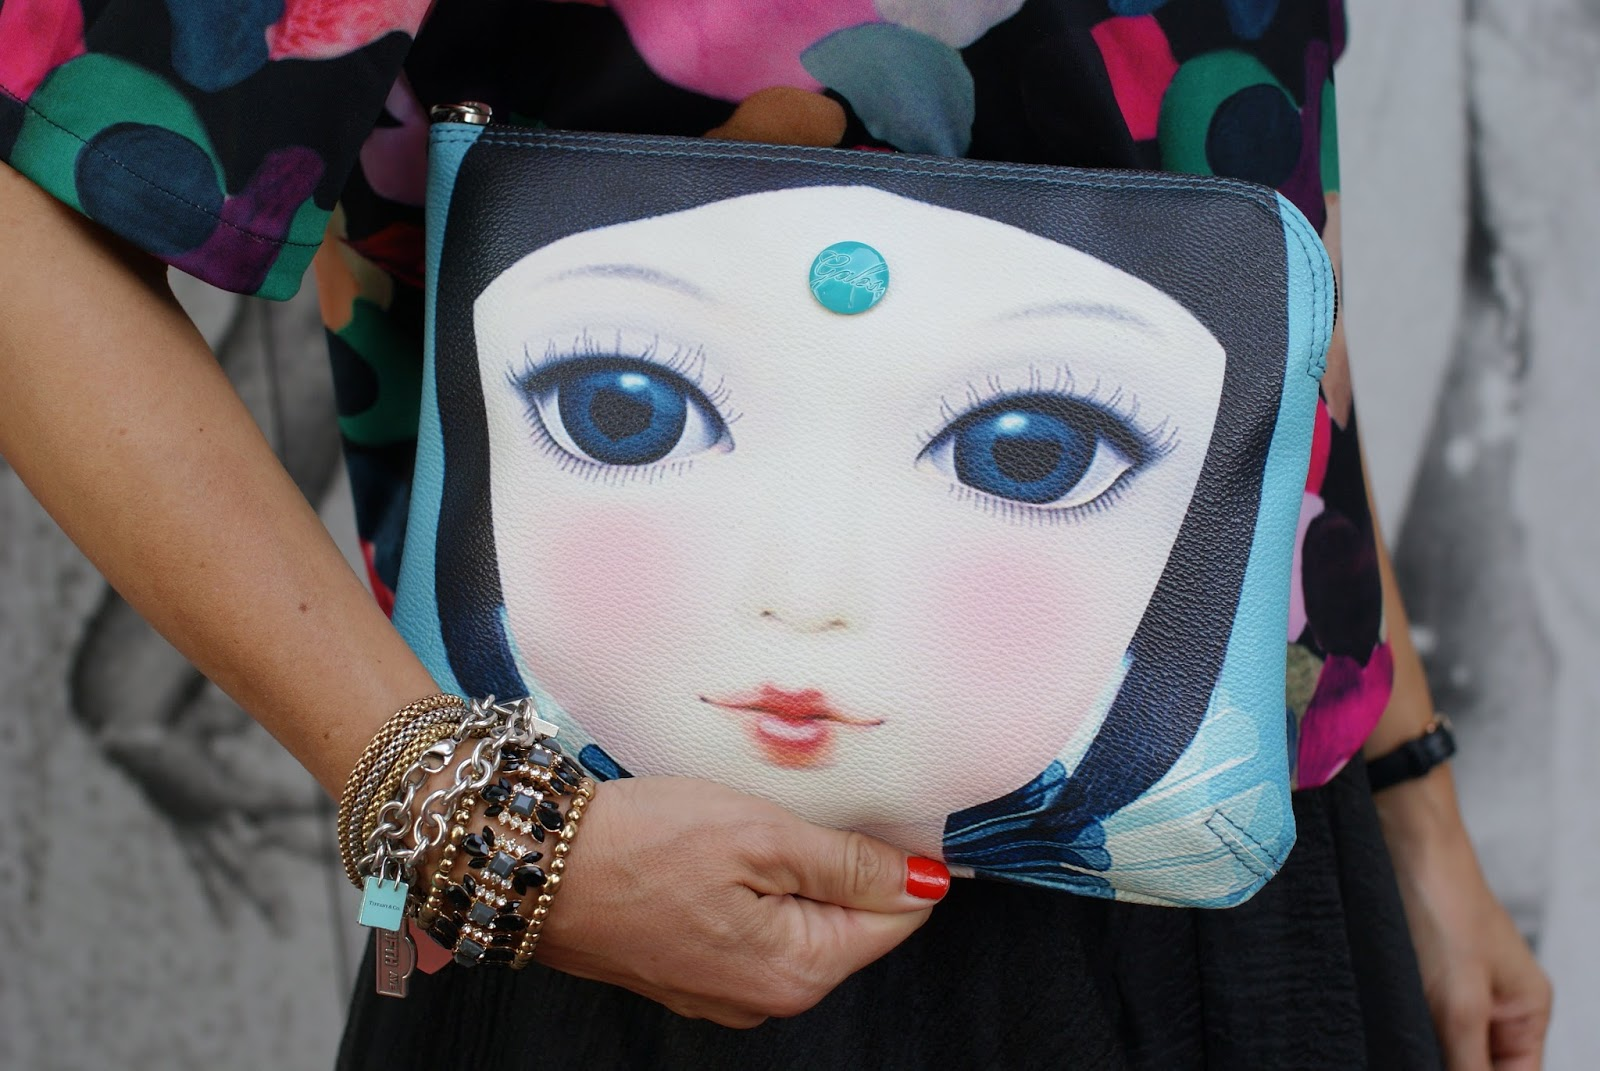 gabs manga clutch on Fashion and Cookies fashion blog